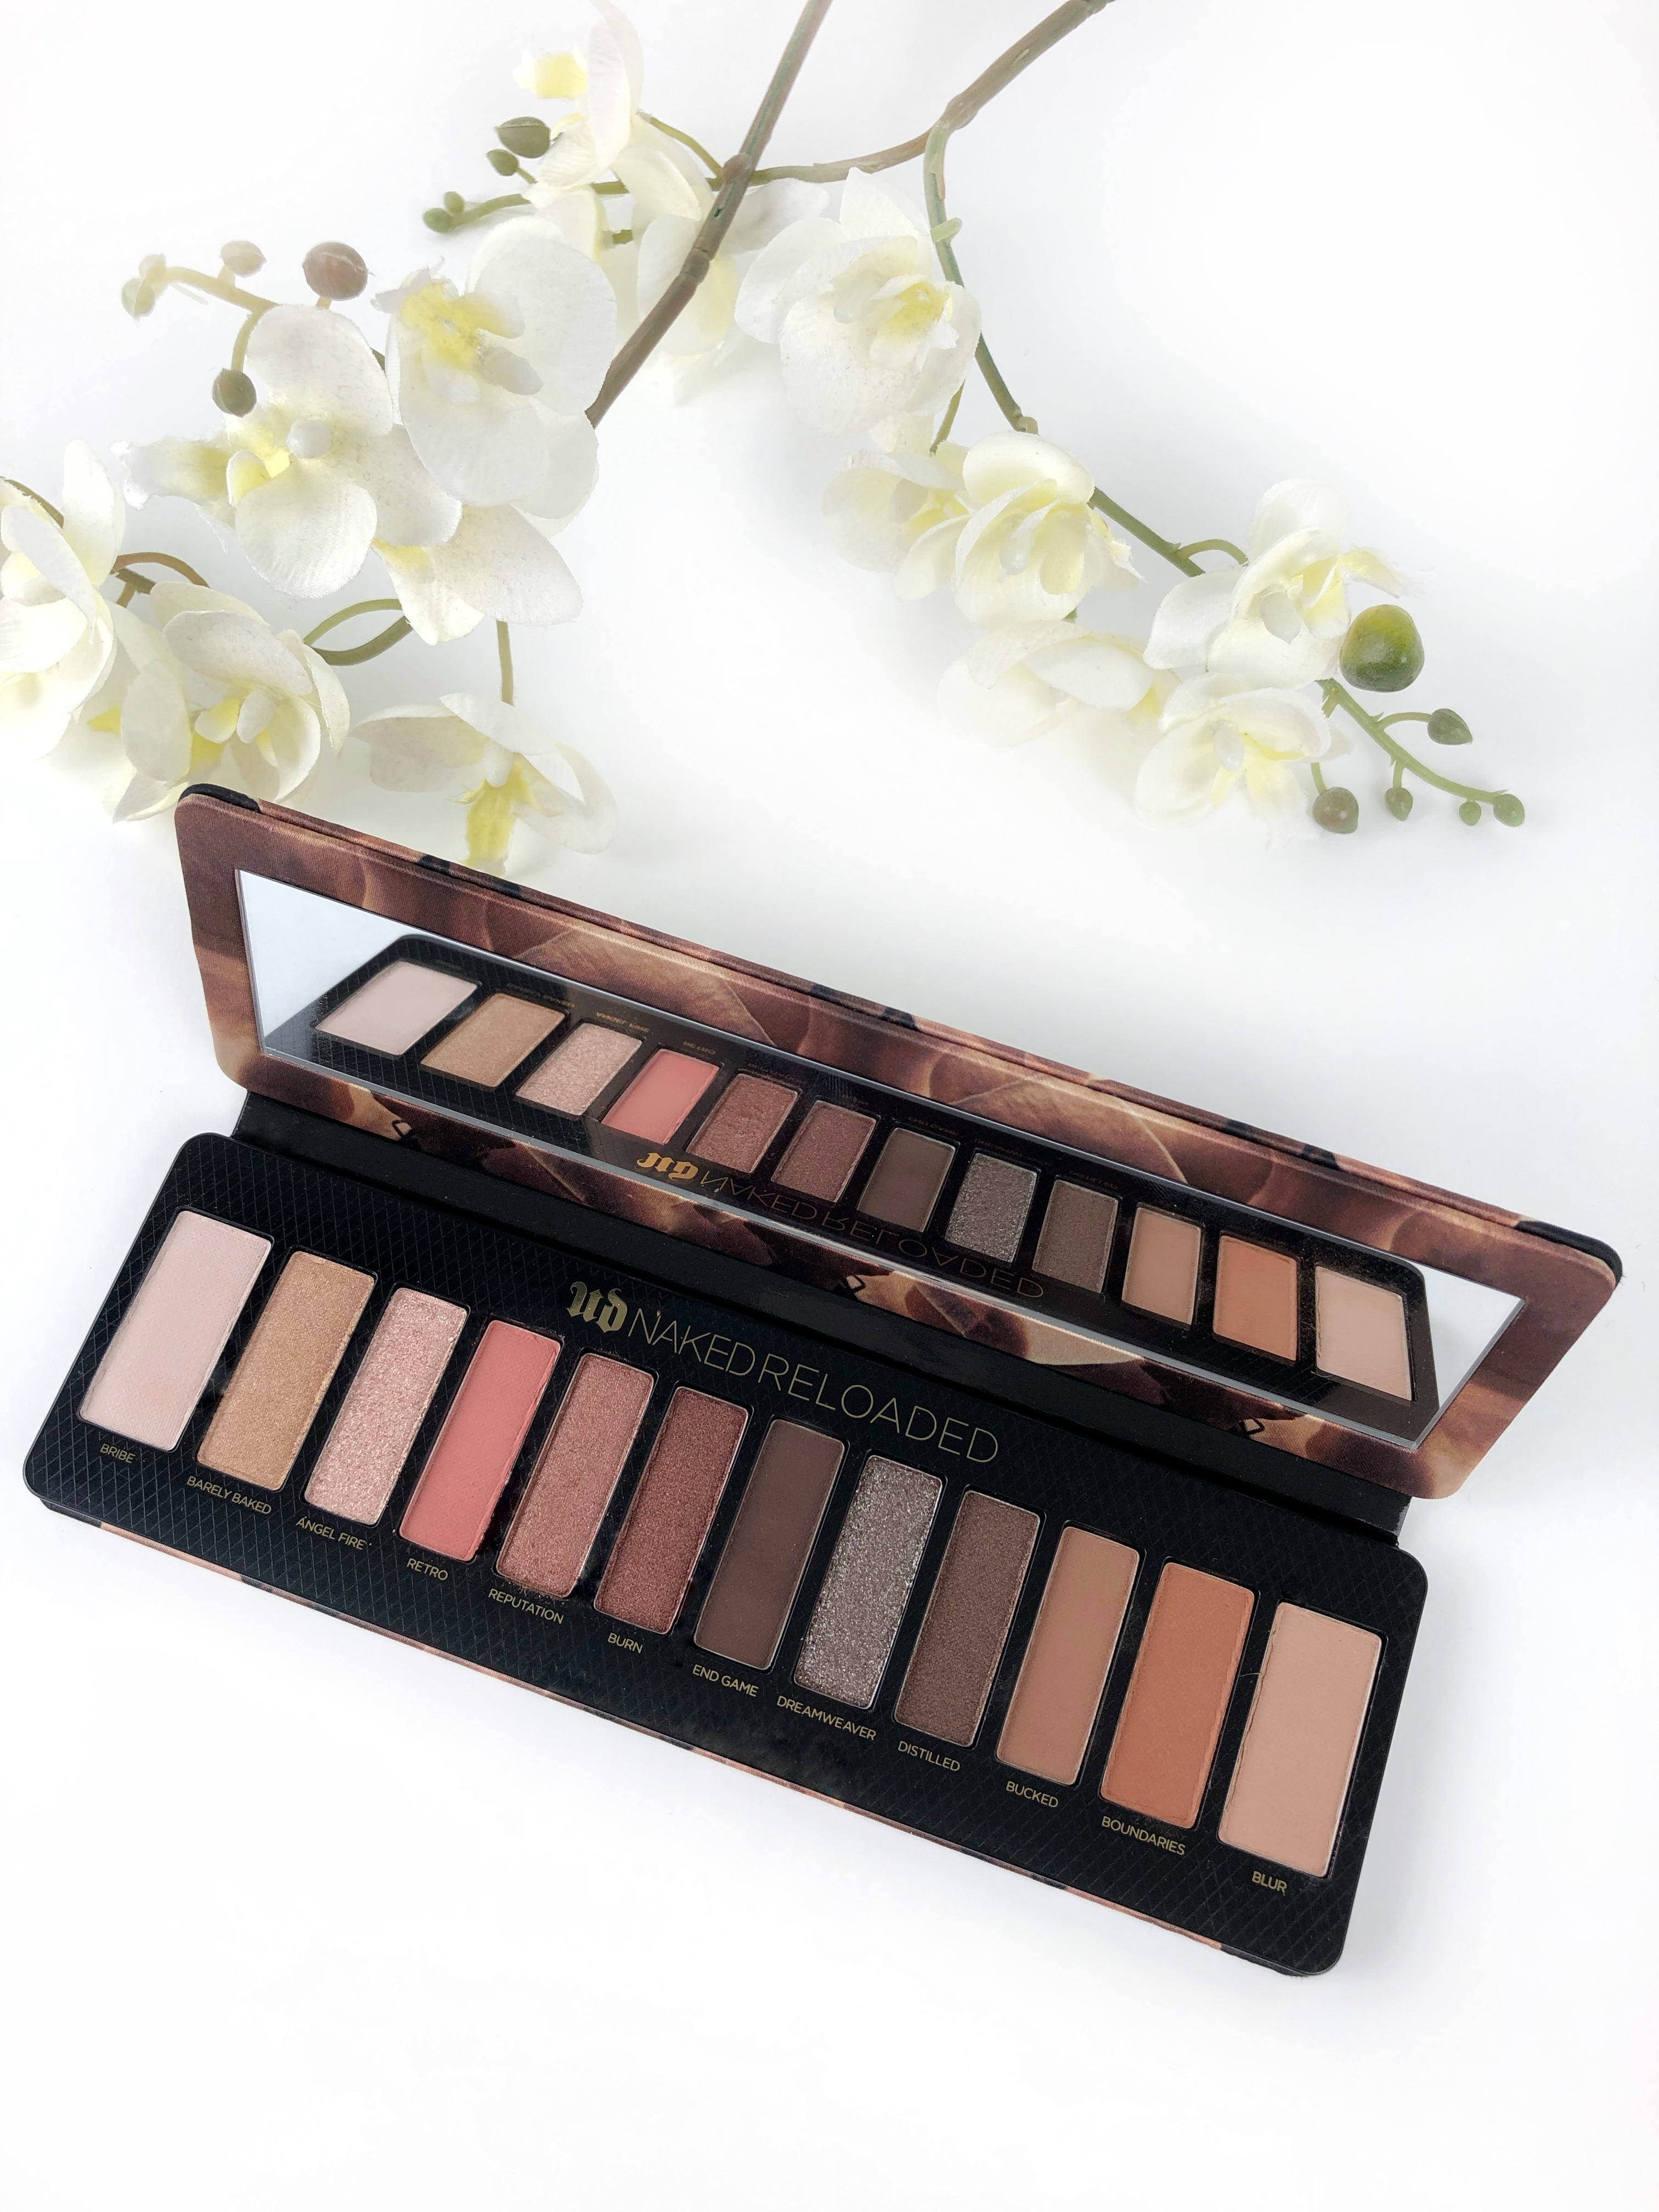 NAKED RELOADED Urban Decay – Opinión y Maquillaje